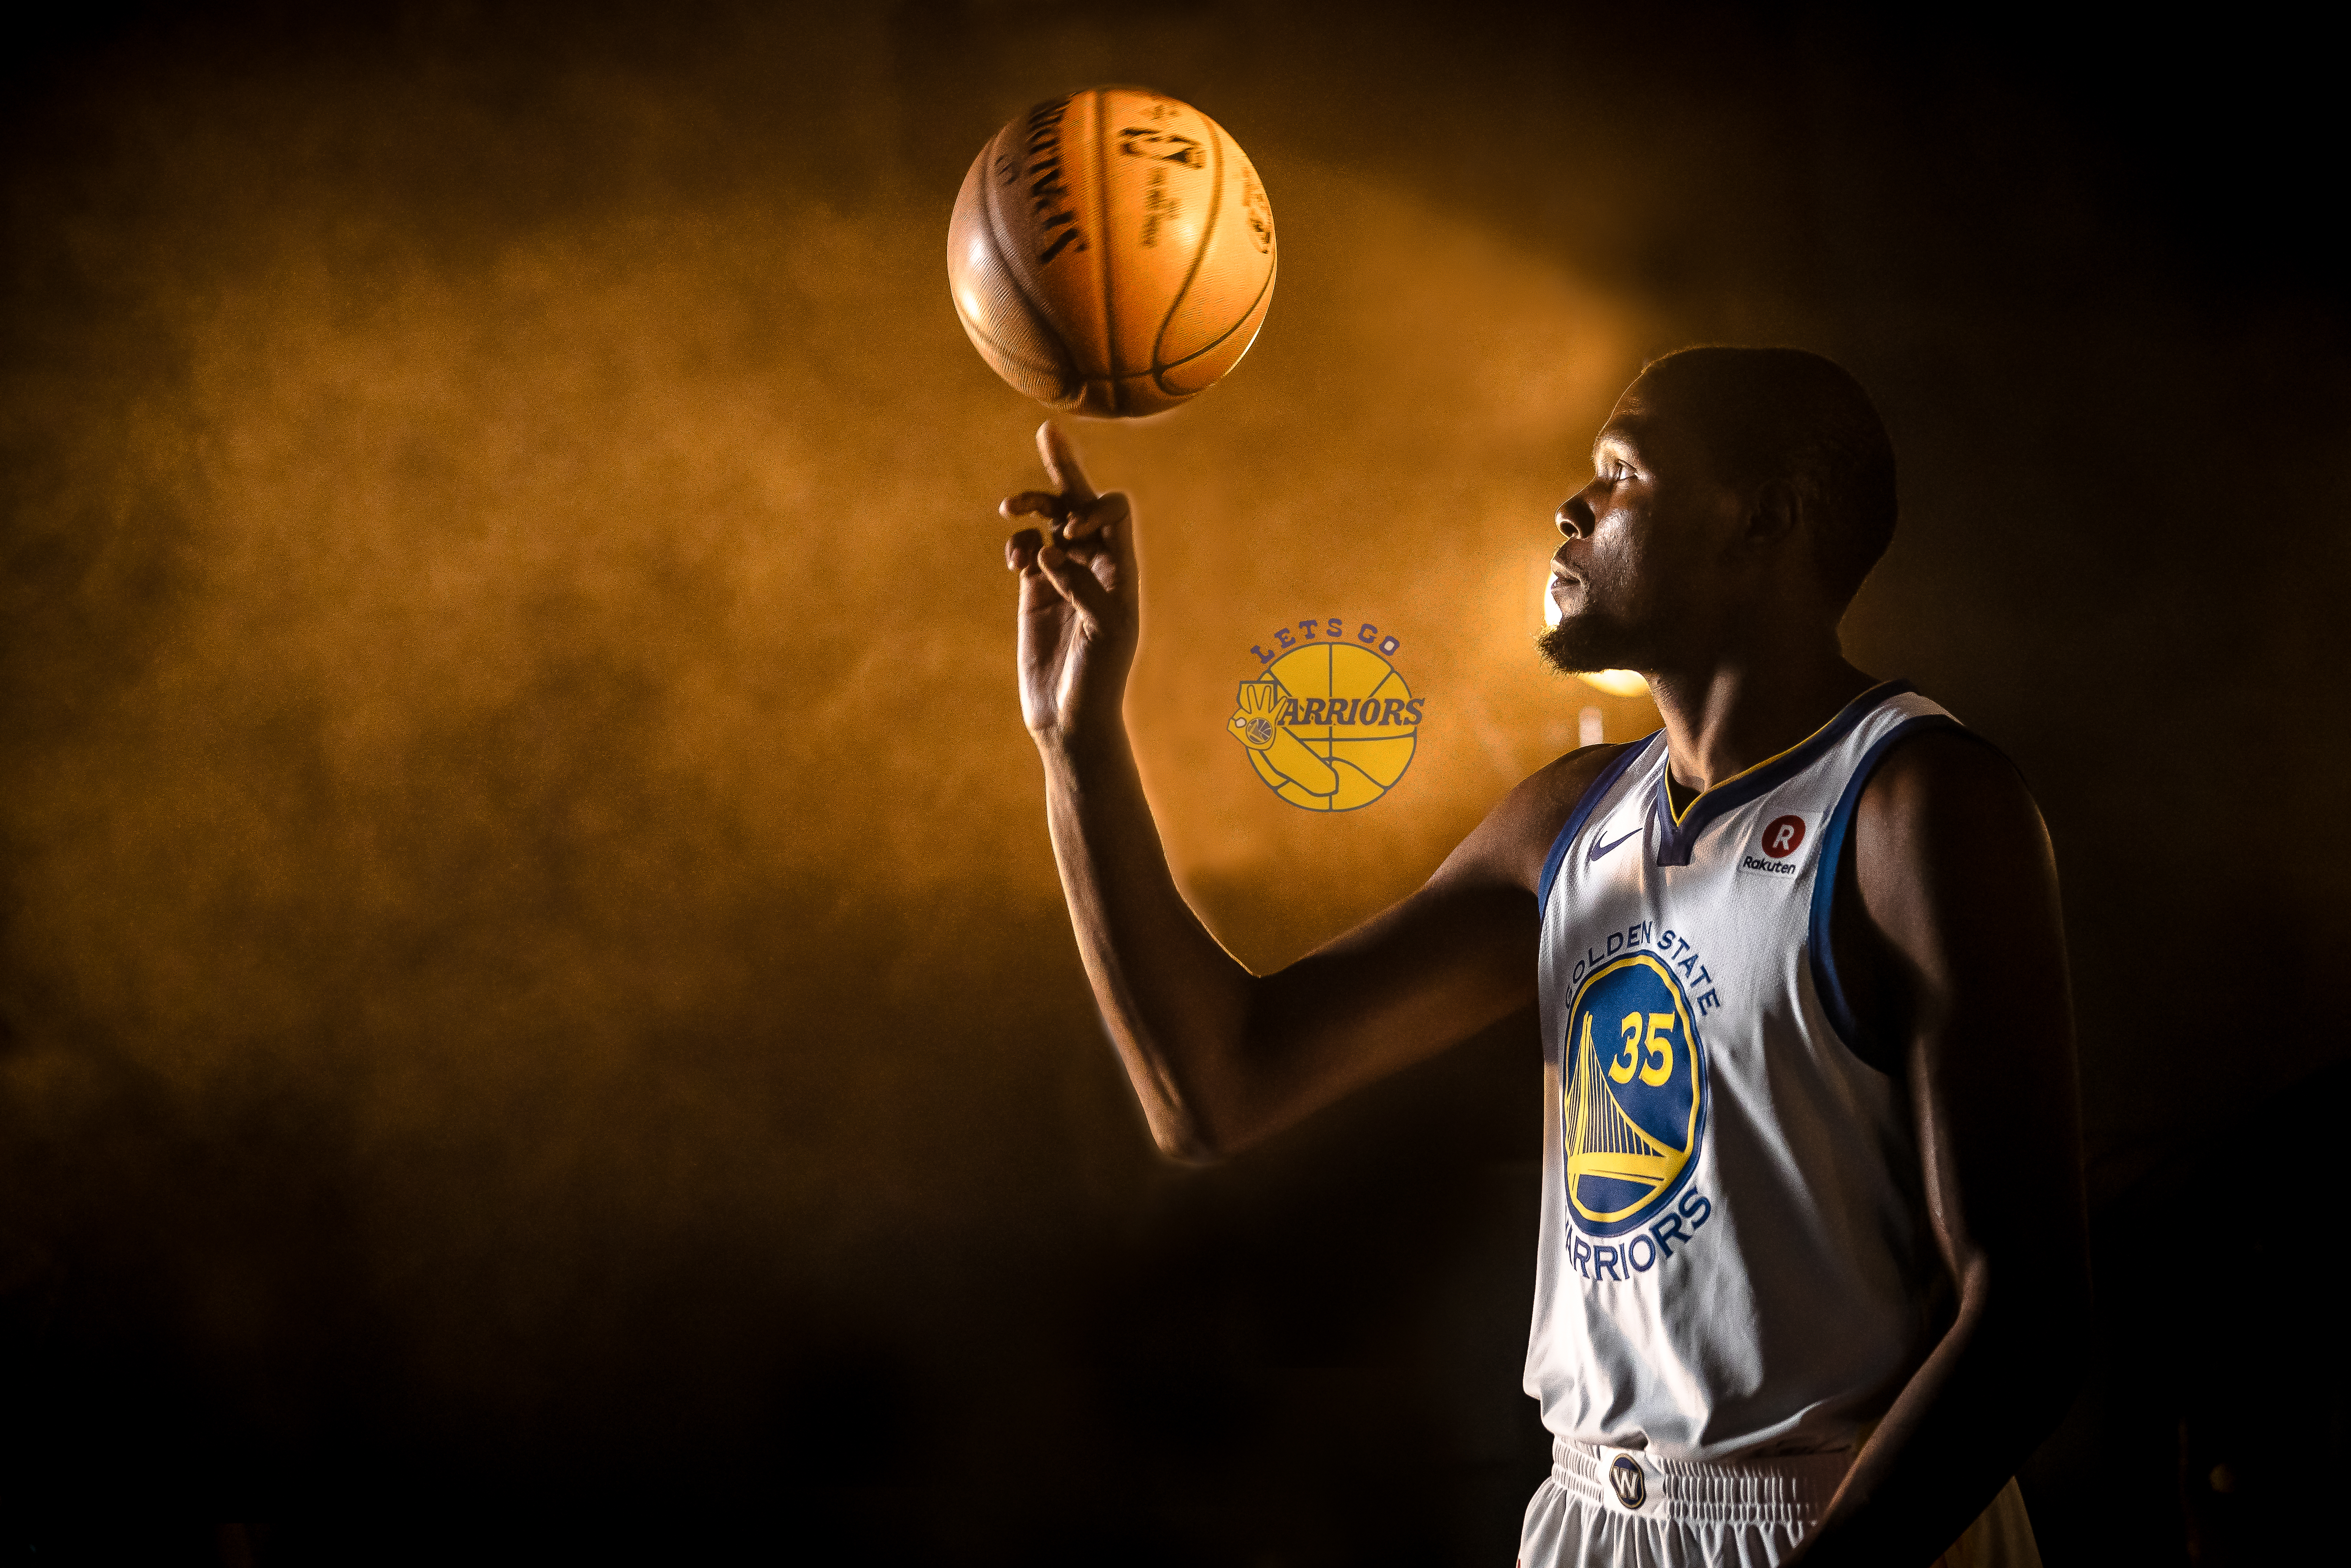 PHOTO/VIDEO GALLERY: Golden State Warriors Media Day - Stephen Curry, Kevin Durant, Klay Thompson, Draymond Green, Nick Young And More!!!